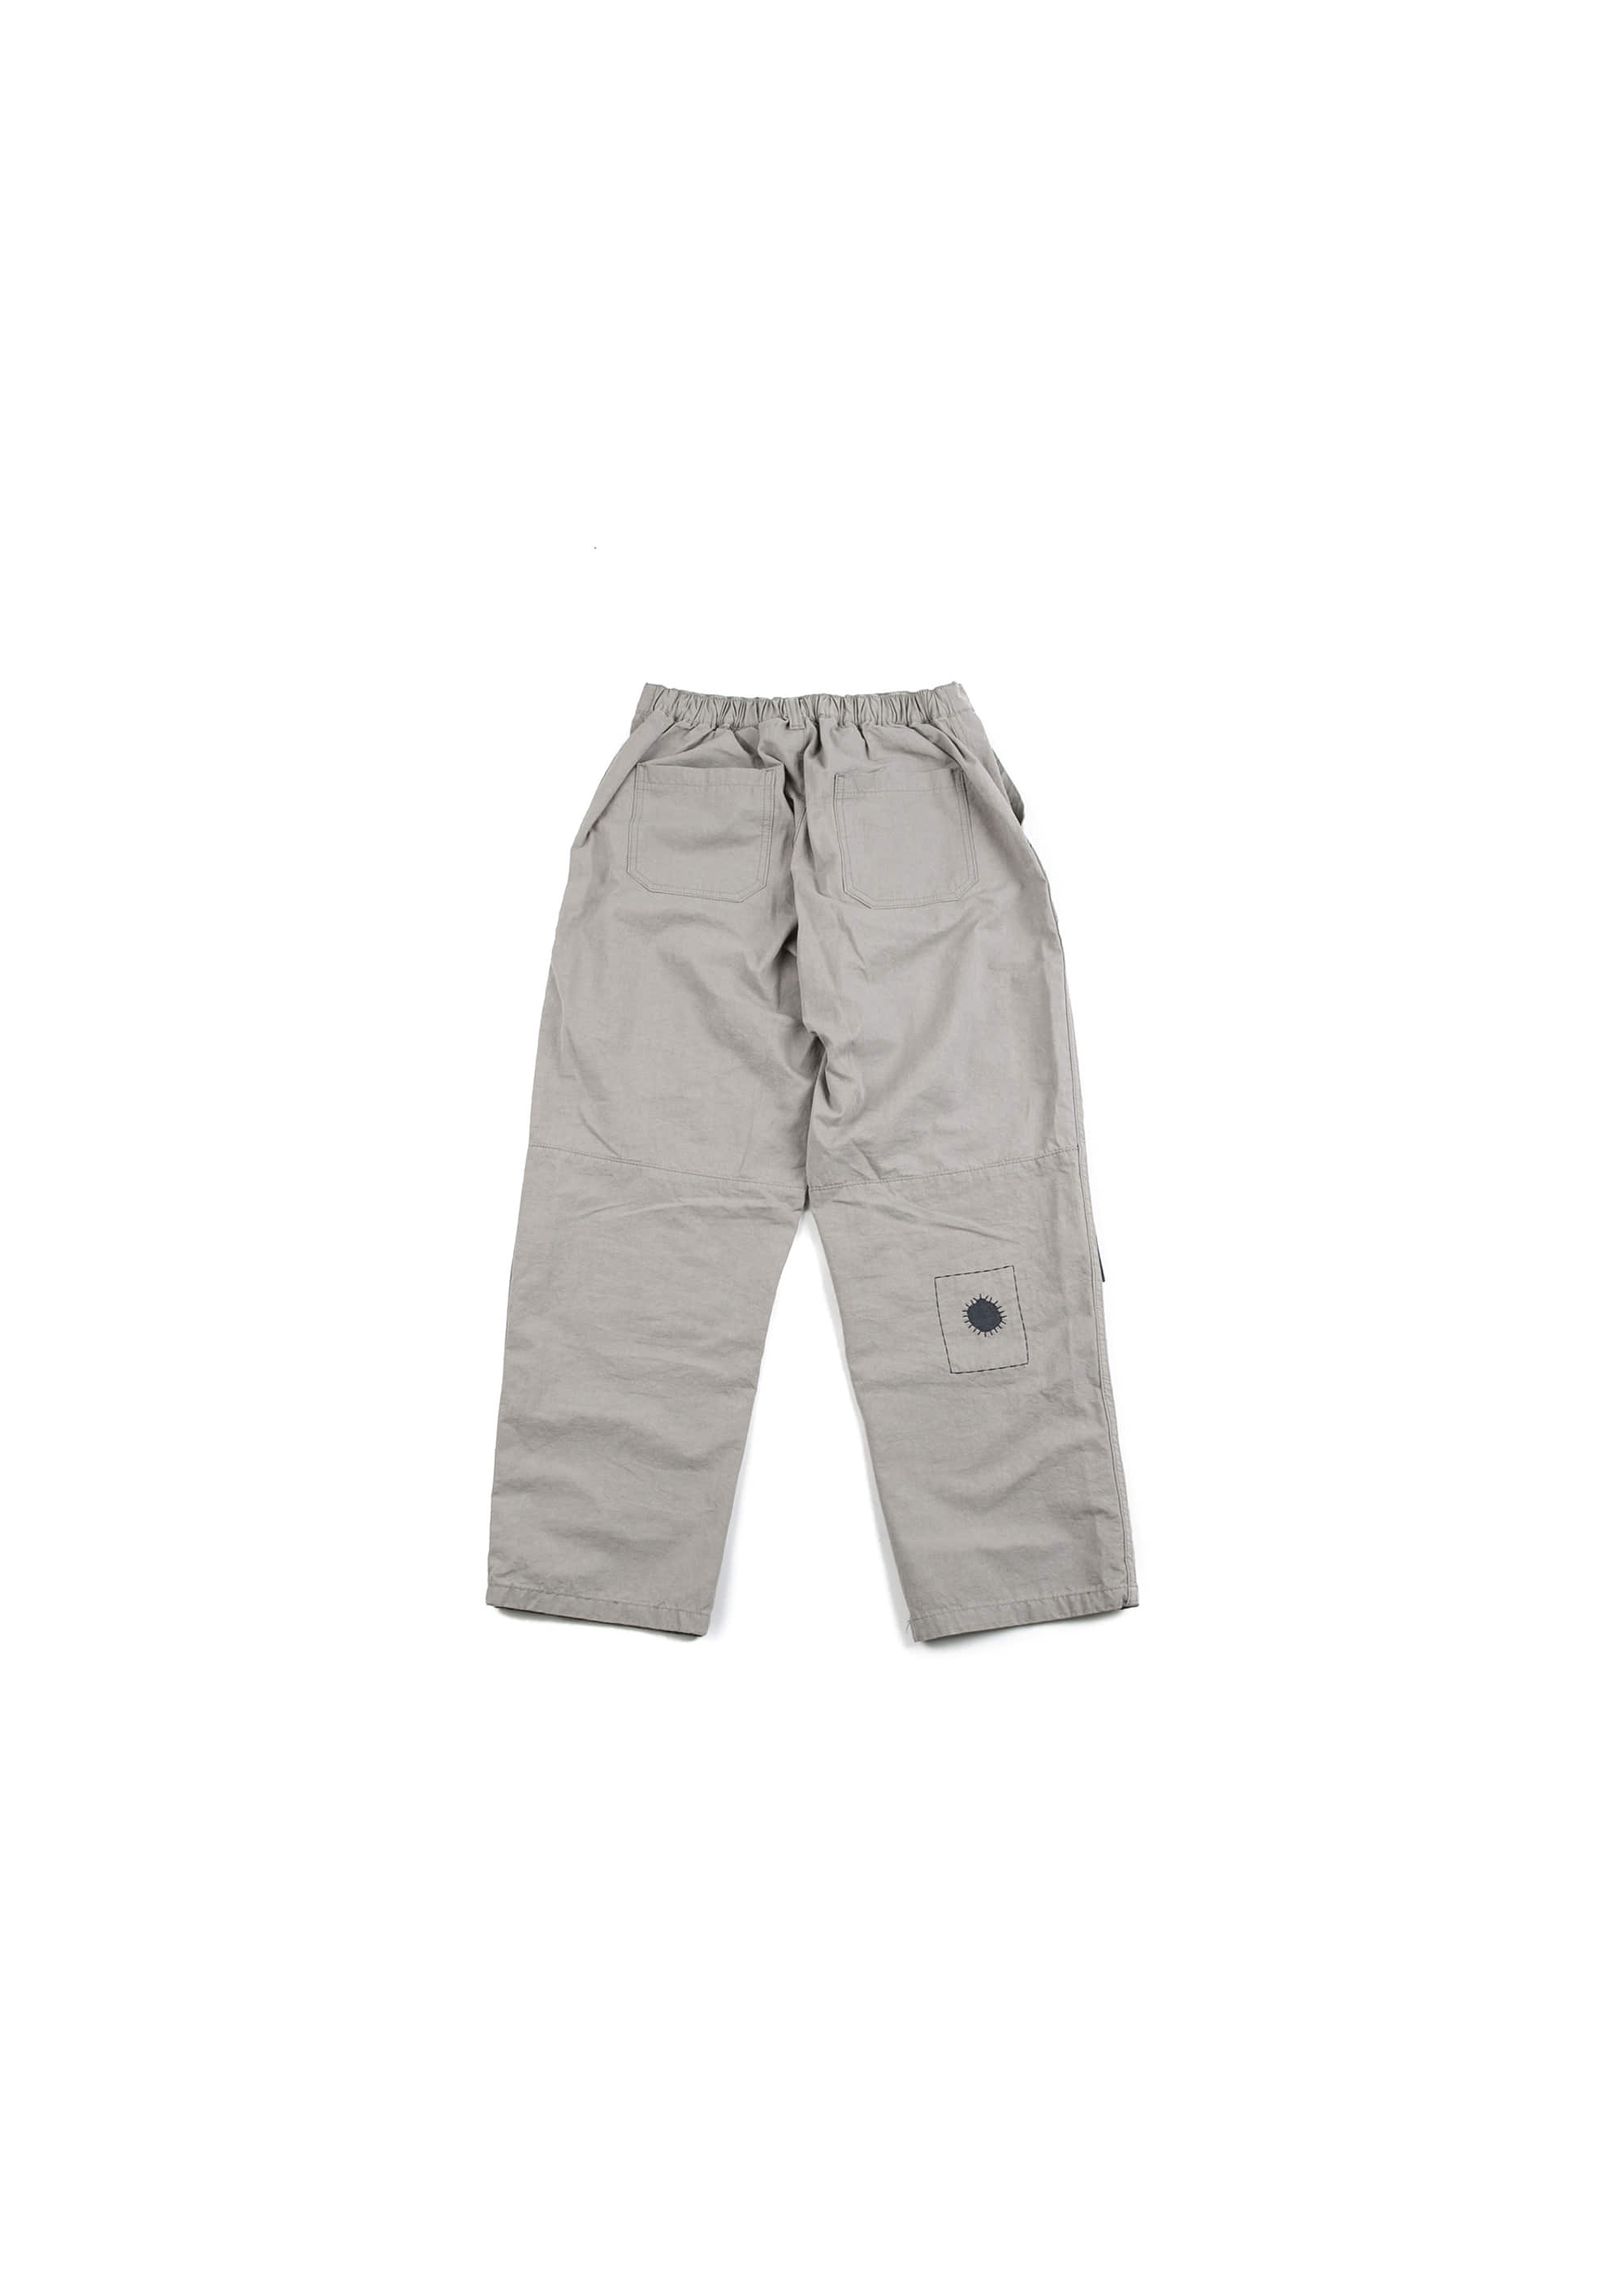 Build Patch Work Pants - Grey